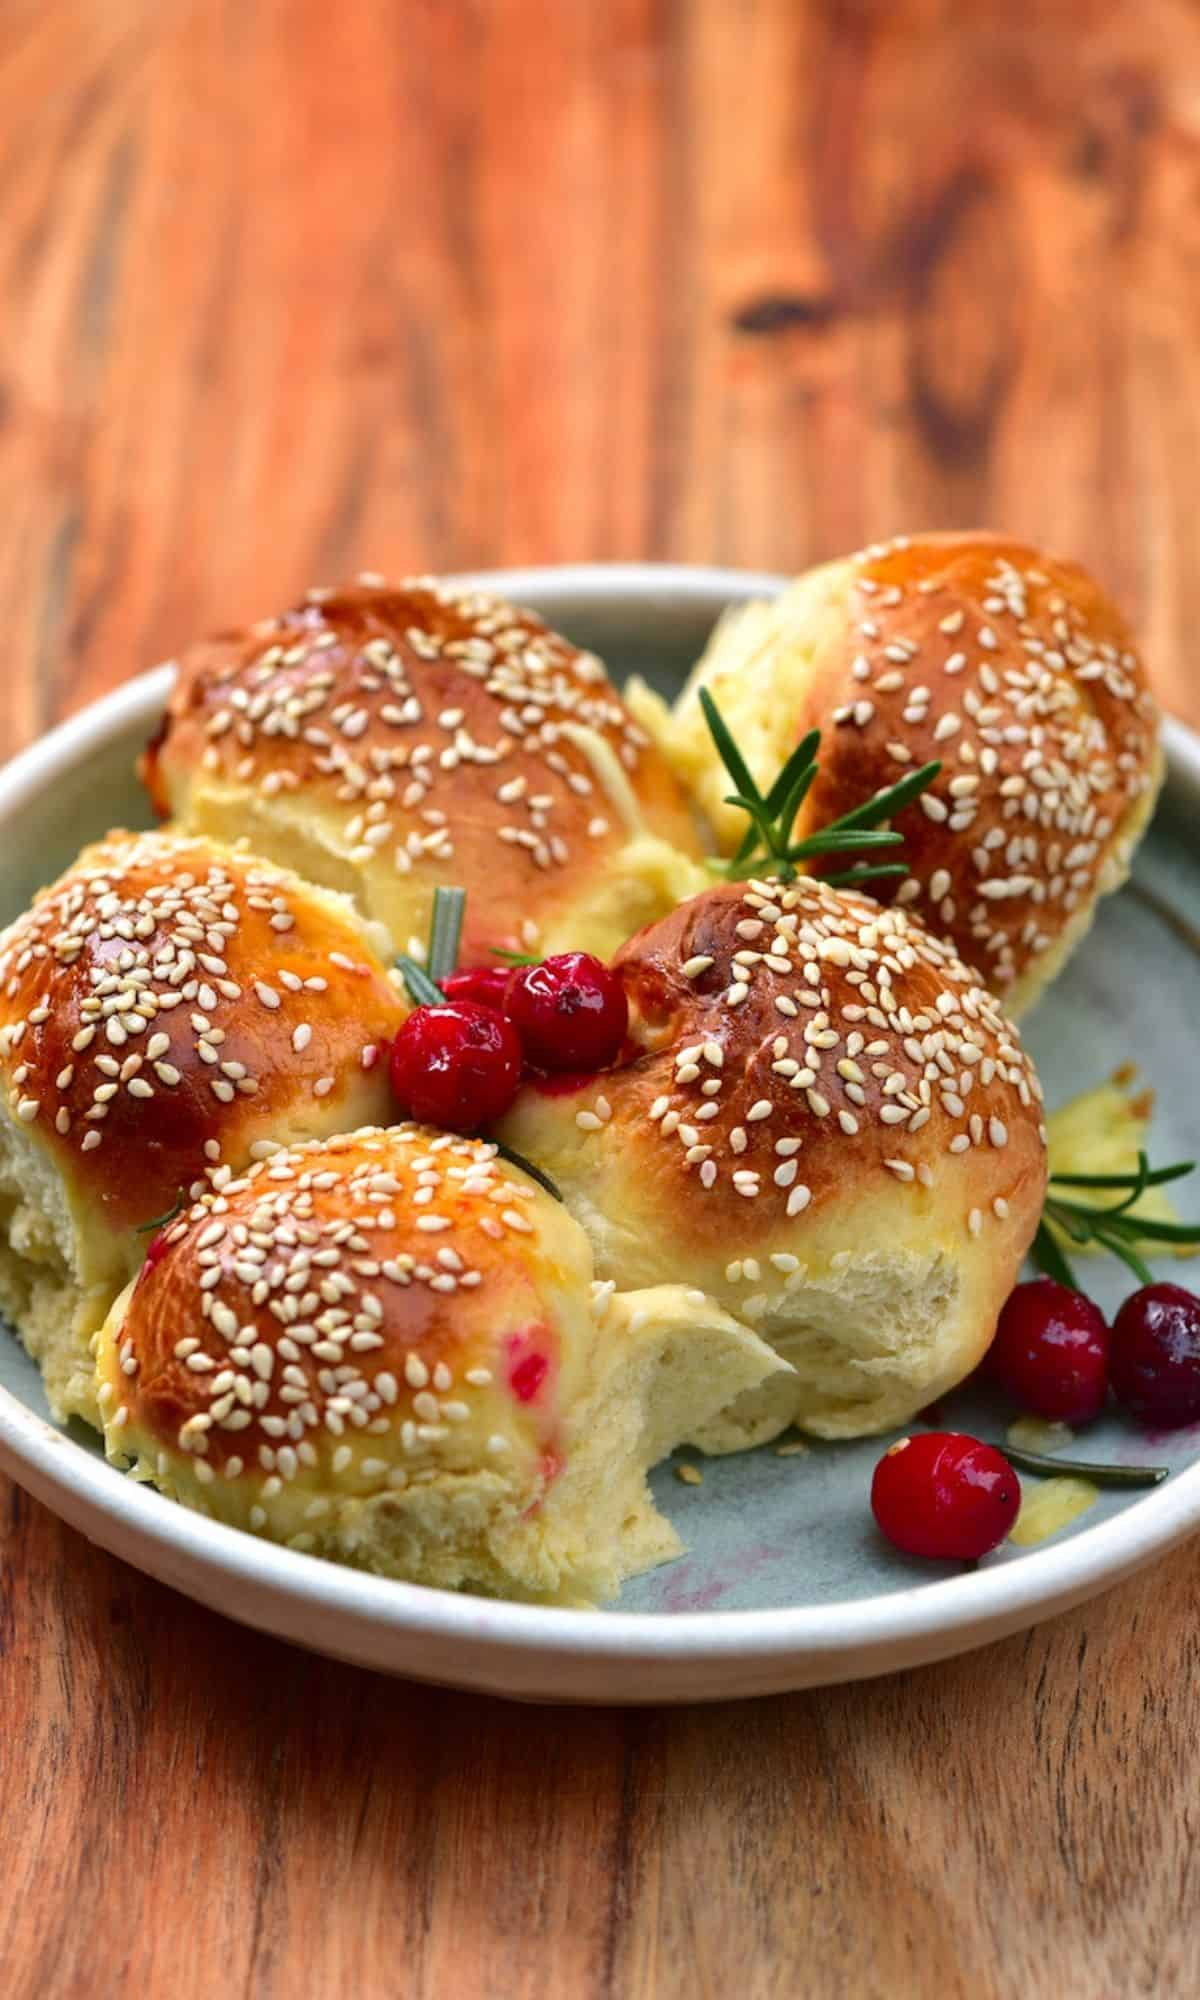 Cheese buns topped with rosemary and cranberries